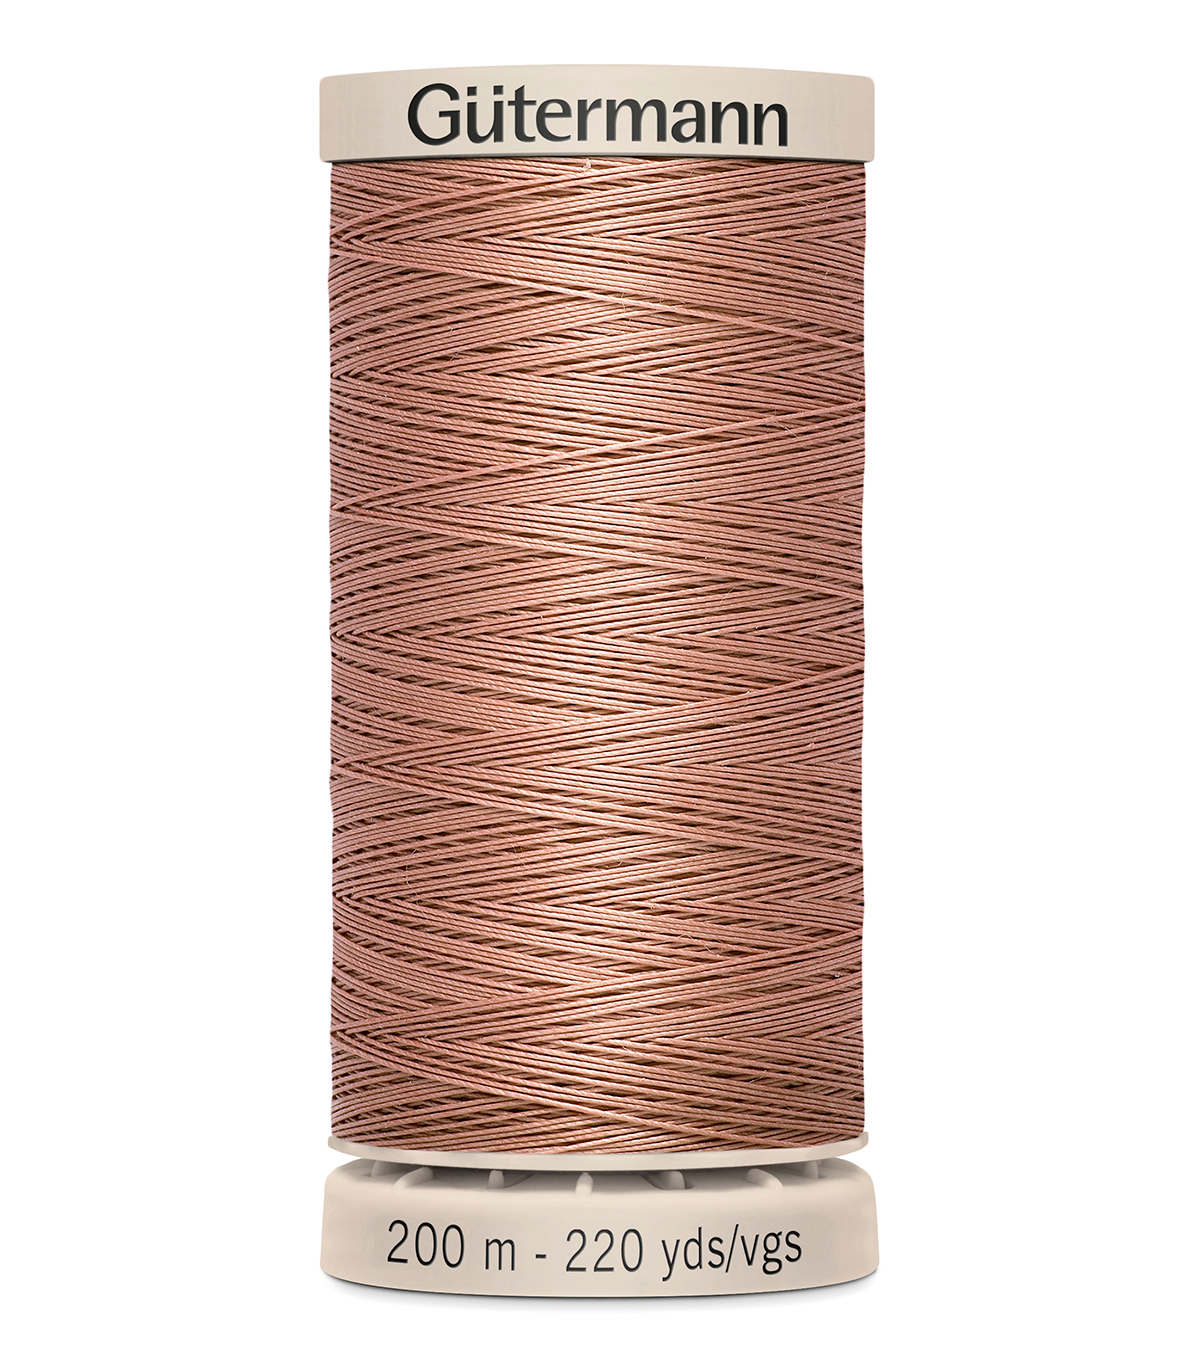 Gutermann Hand Quilting Thread 200 Meters (220 Yrds)-Primary, Dusty Rose #2626